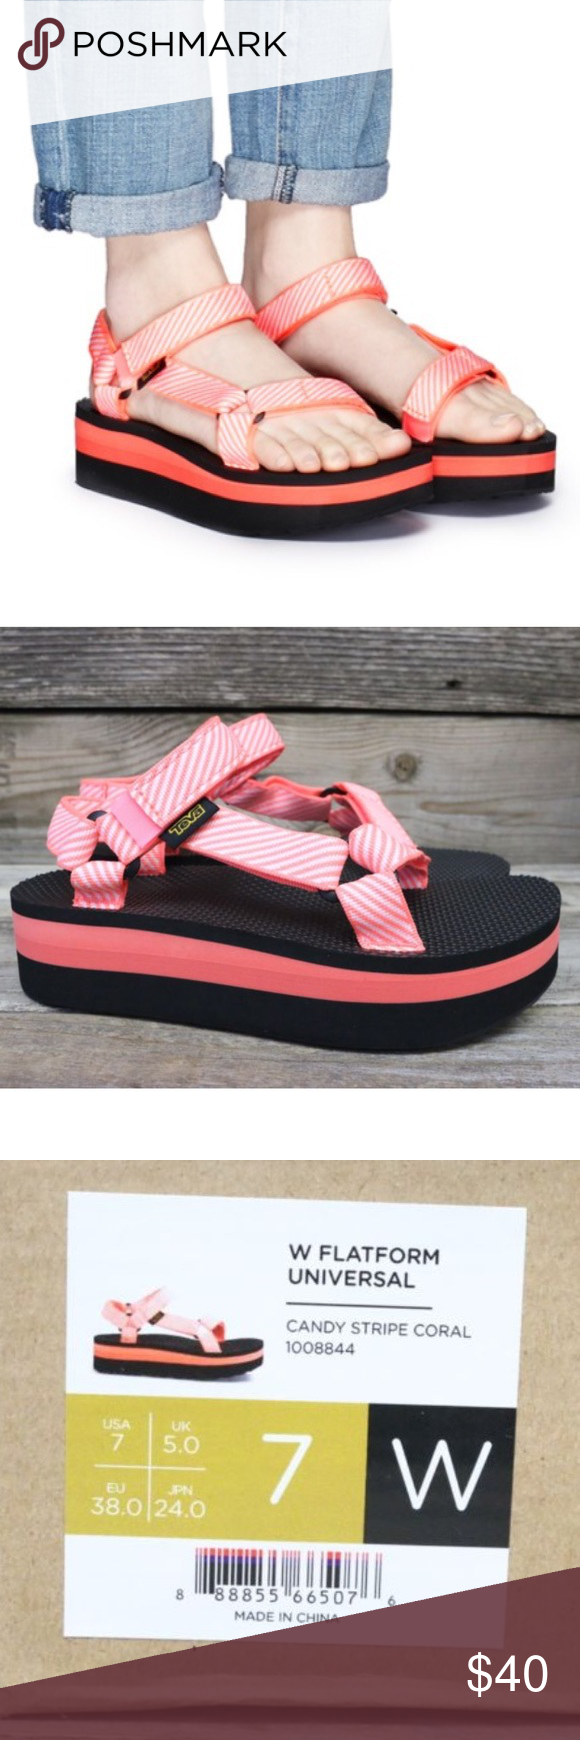 704a241d397b2d Teva Flatform Universal Candy 🍭Stripe Sandals 7 New and authentic! Teva  Shoes Sandals